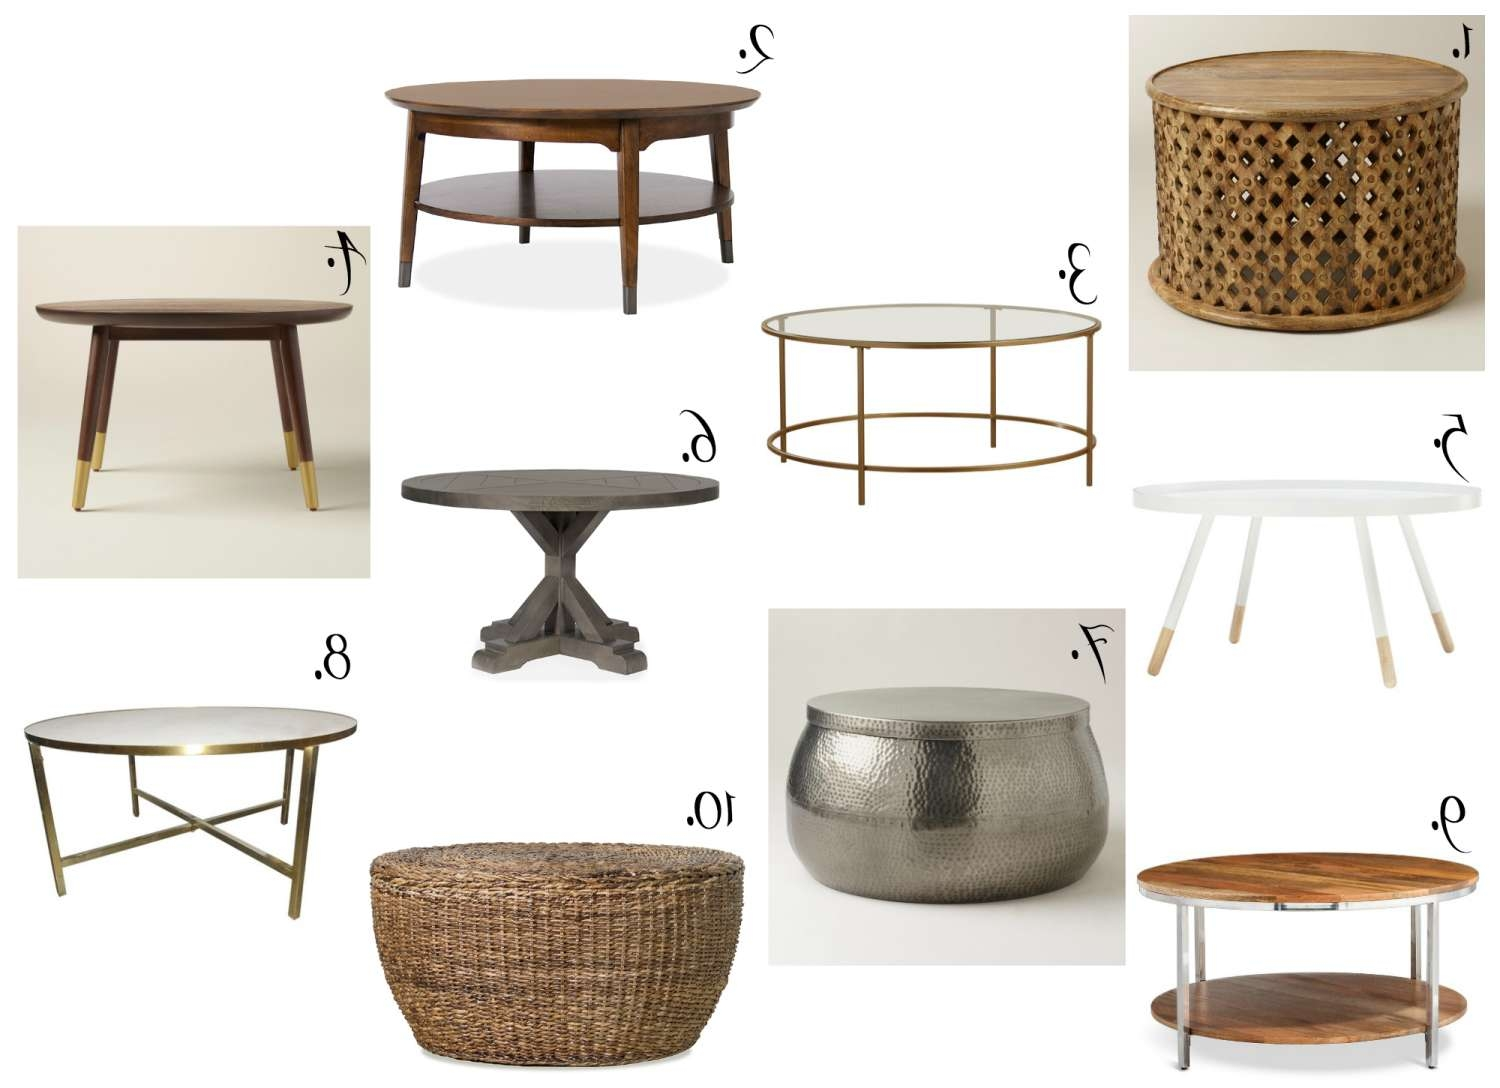 Affordable Round Coffee Tables – The Chronicles Of Home Regarding Most Popular Round Coffee Tables (View 4 of 20)